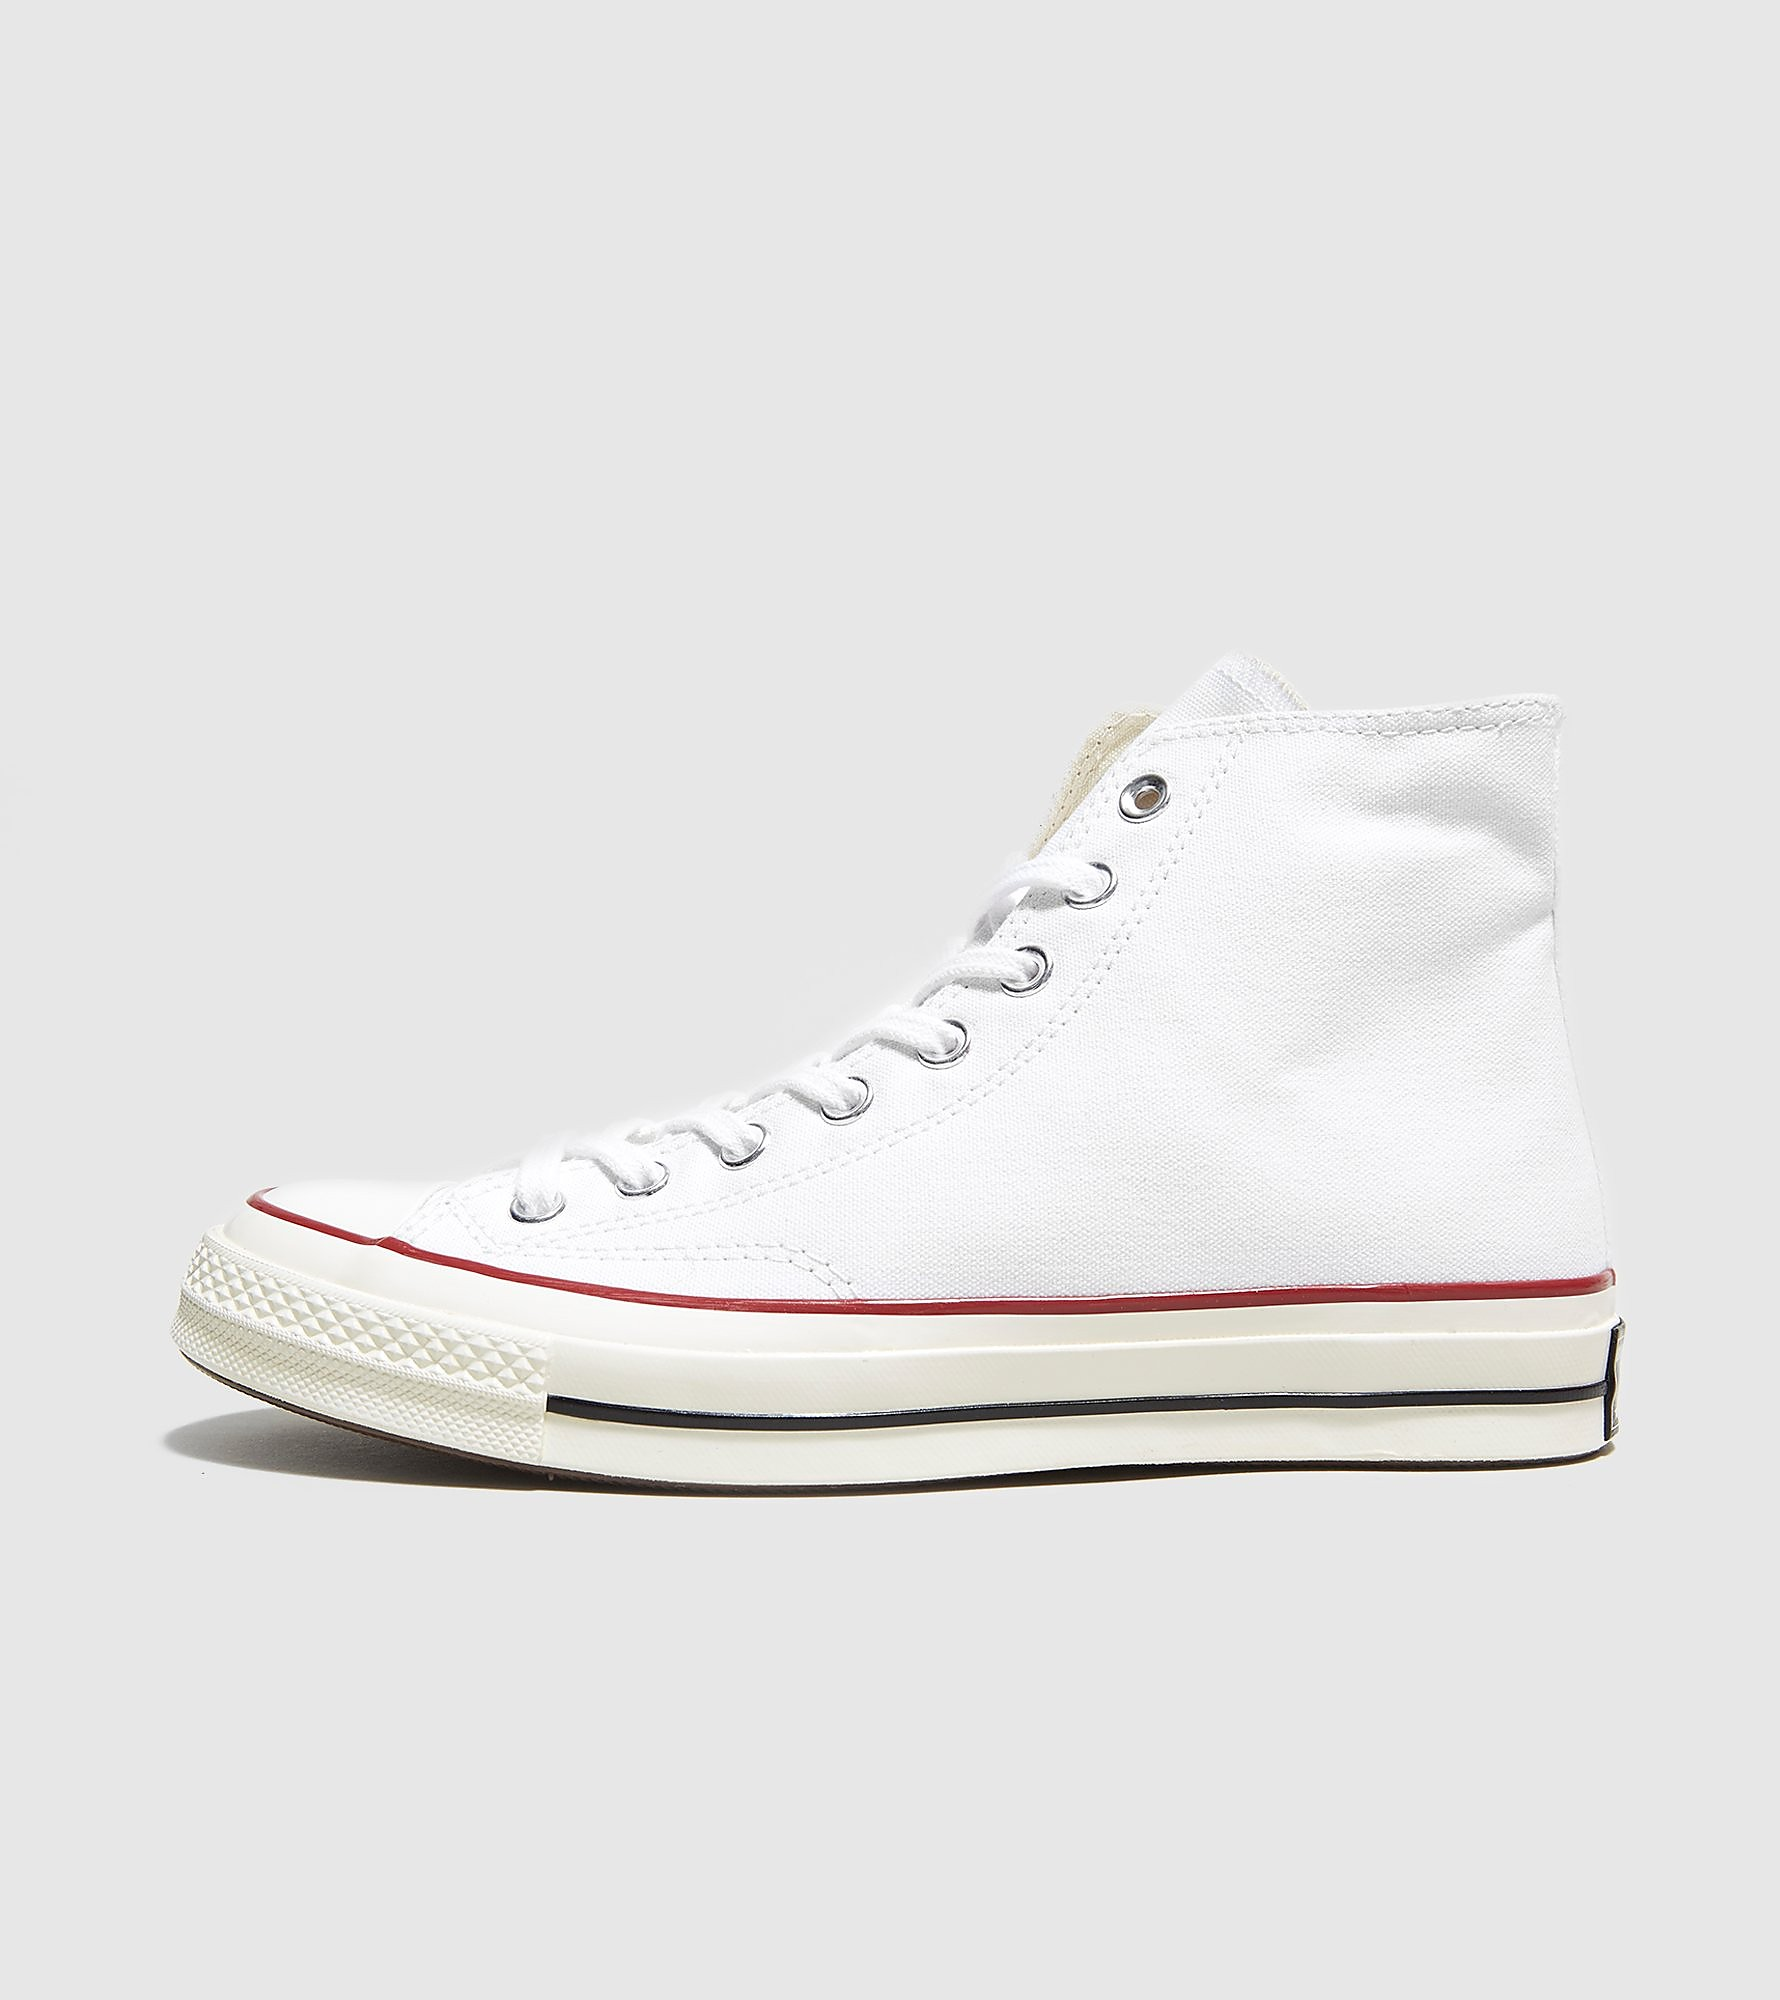 Converse Chuck Taylor All Star '70 Hi